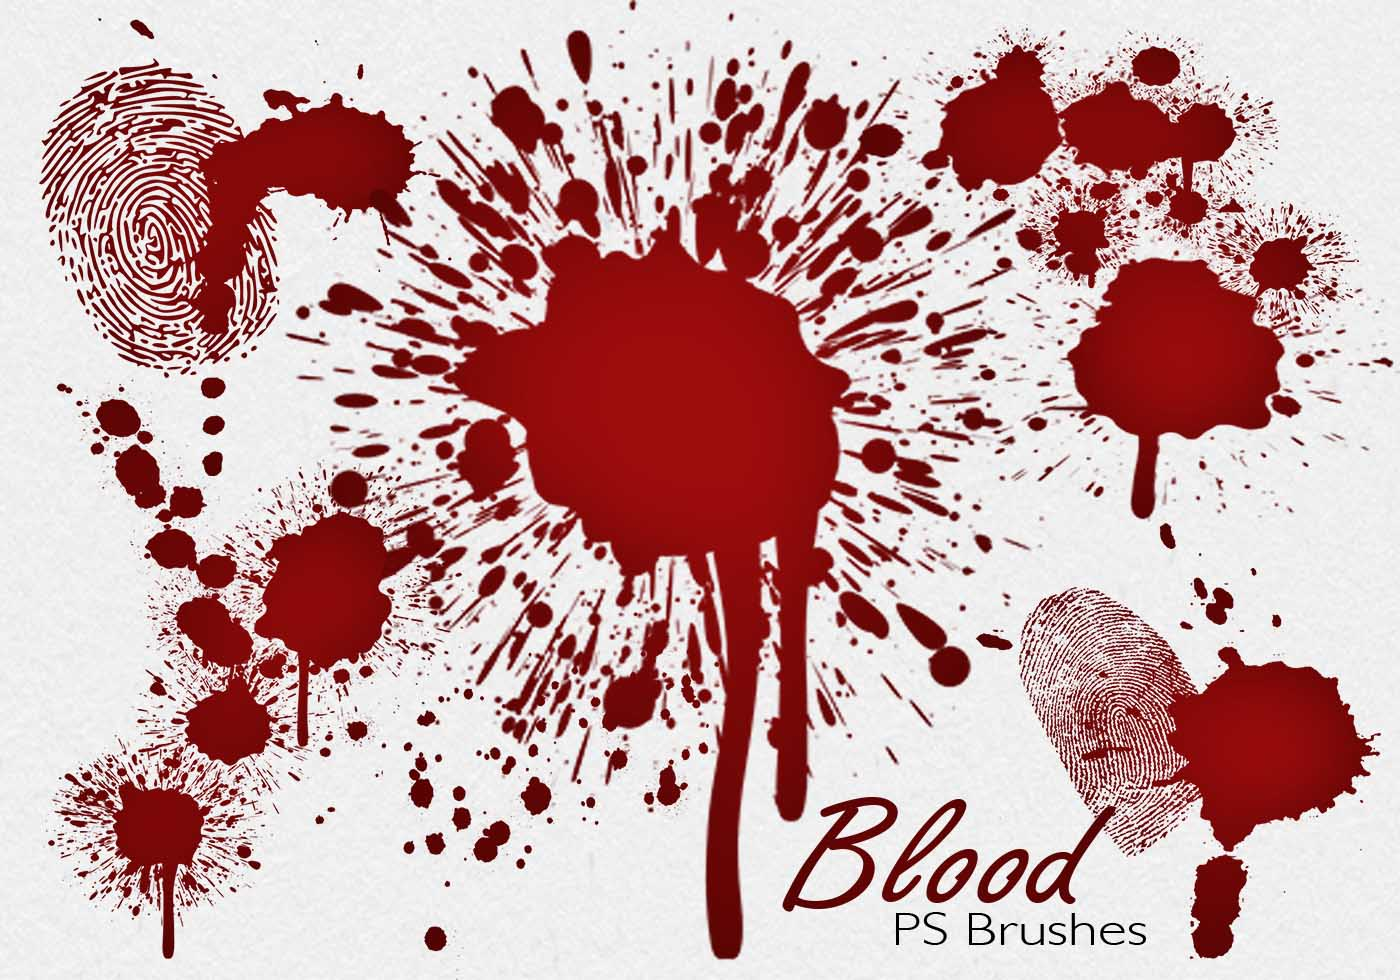 blood splatter analysis paper What can an investigator learn from the analysis of a blood spatter  be very  careful to keep the blood on the paper and not on yourself, the table, or floor.